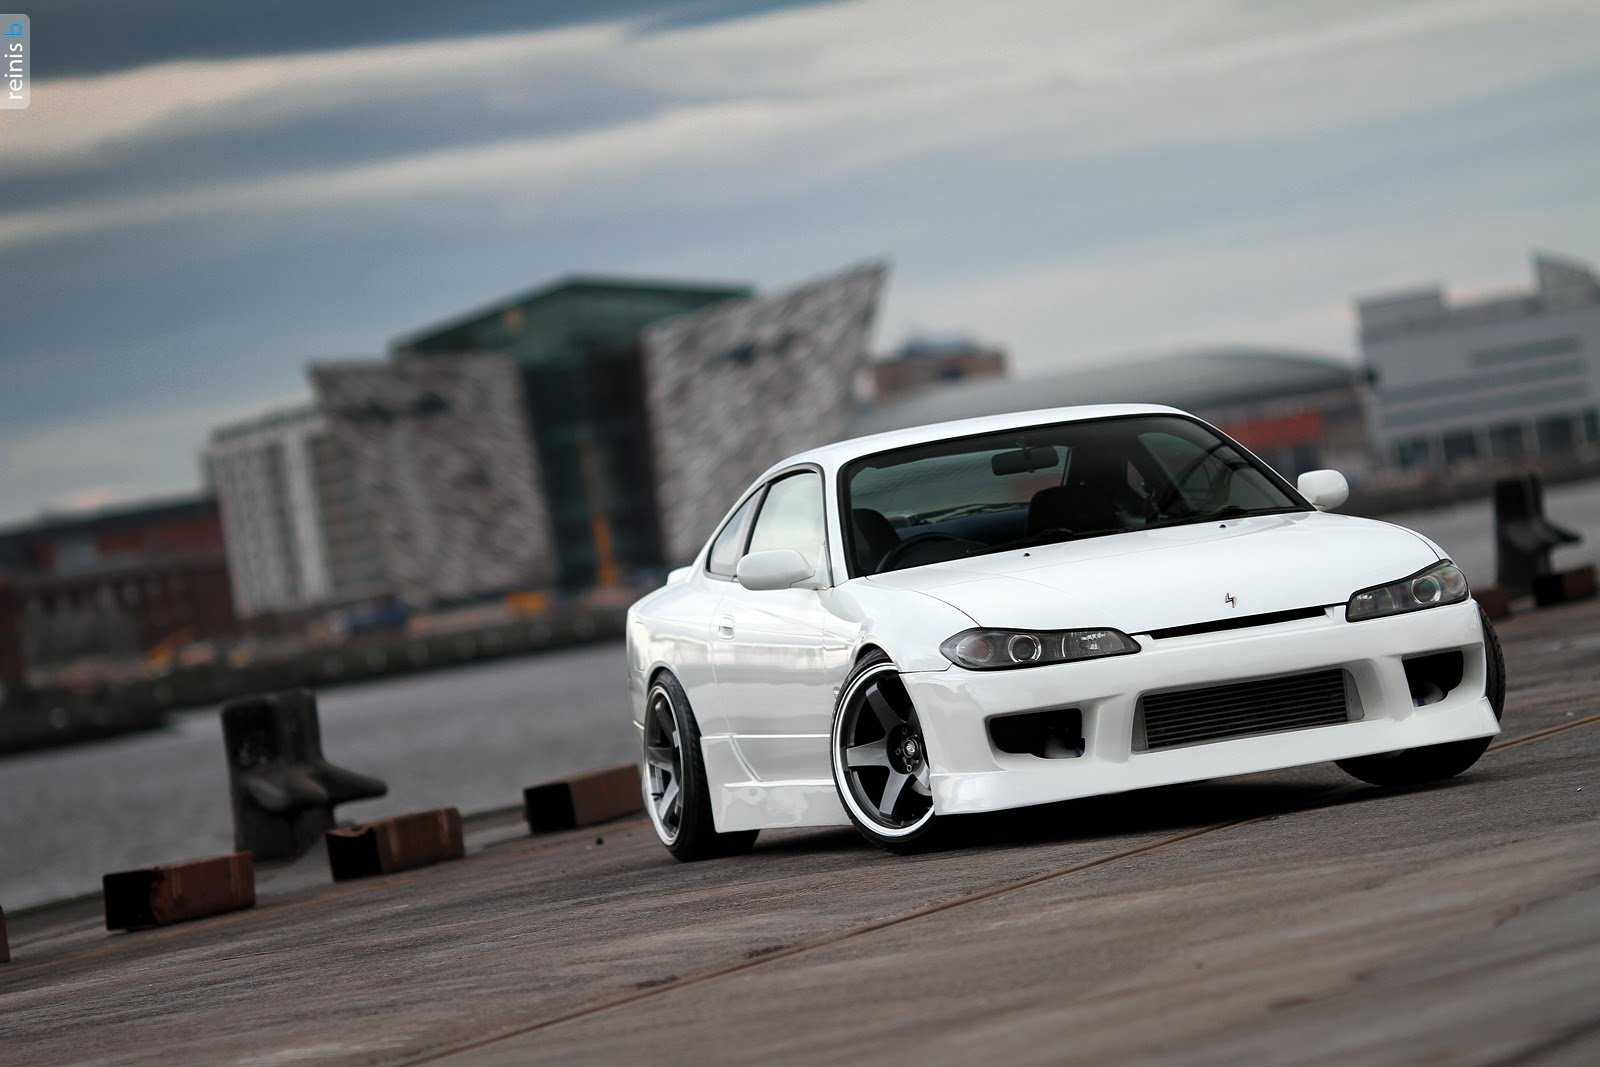 s15 wallpaper - photo #32